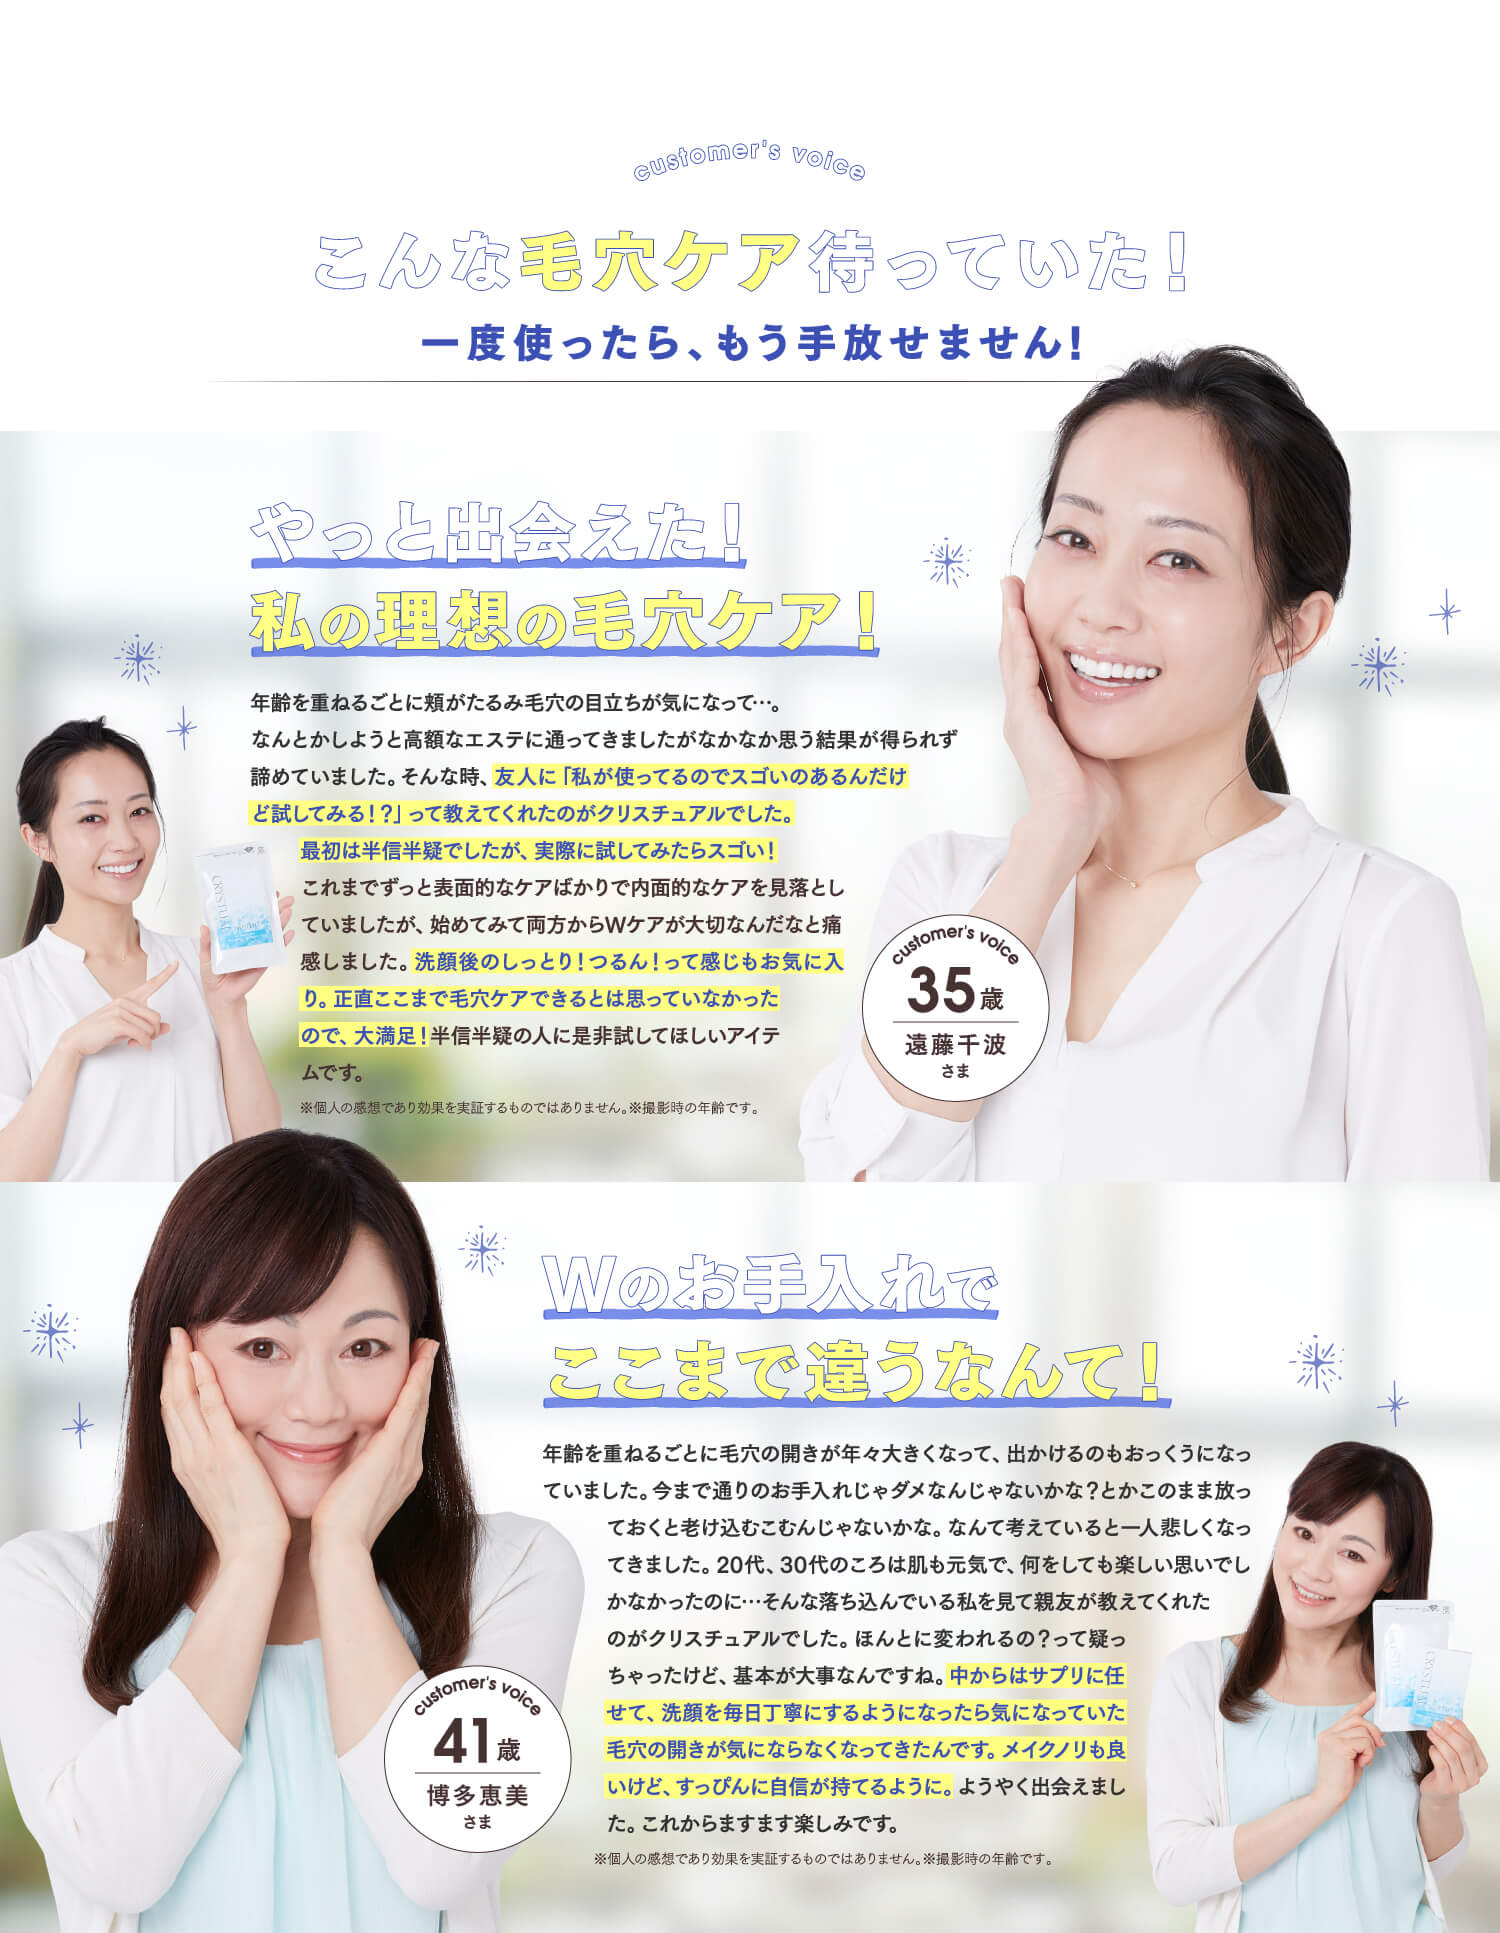 CRYSTUAL CLEAR SOAP・CRYSTUAL SUPPLEMENT こんな毛穴ケア待っていた!一度使ったら、もう手放せません!